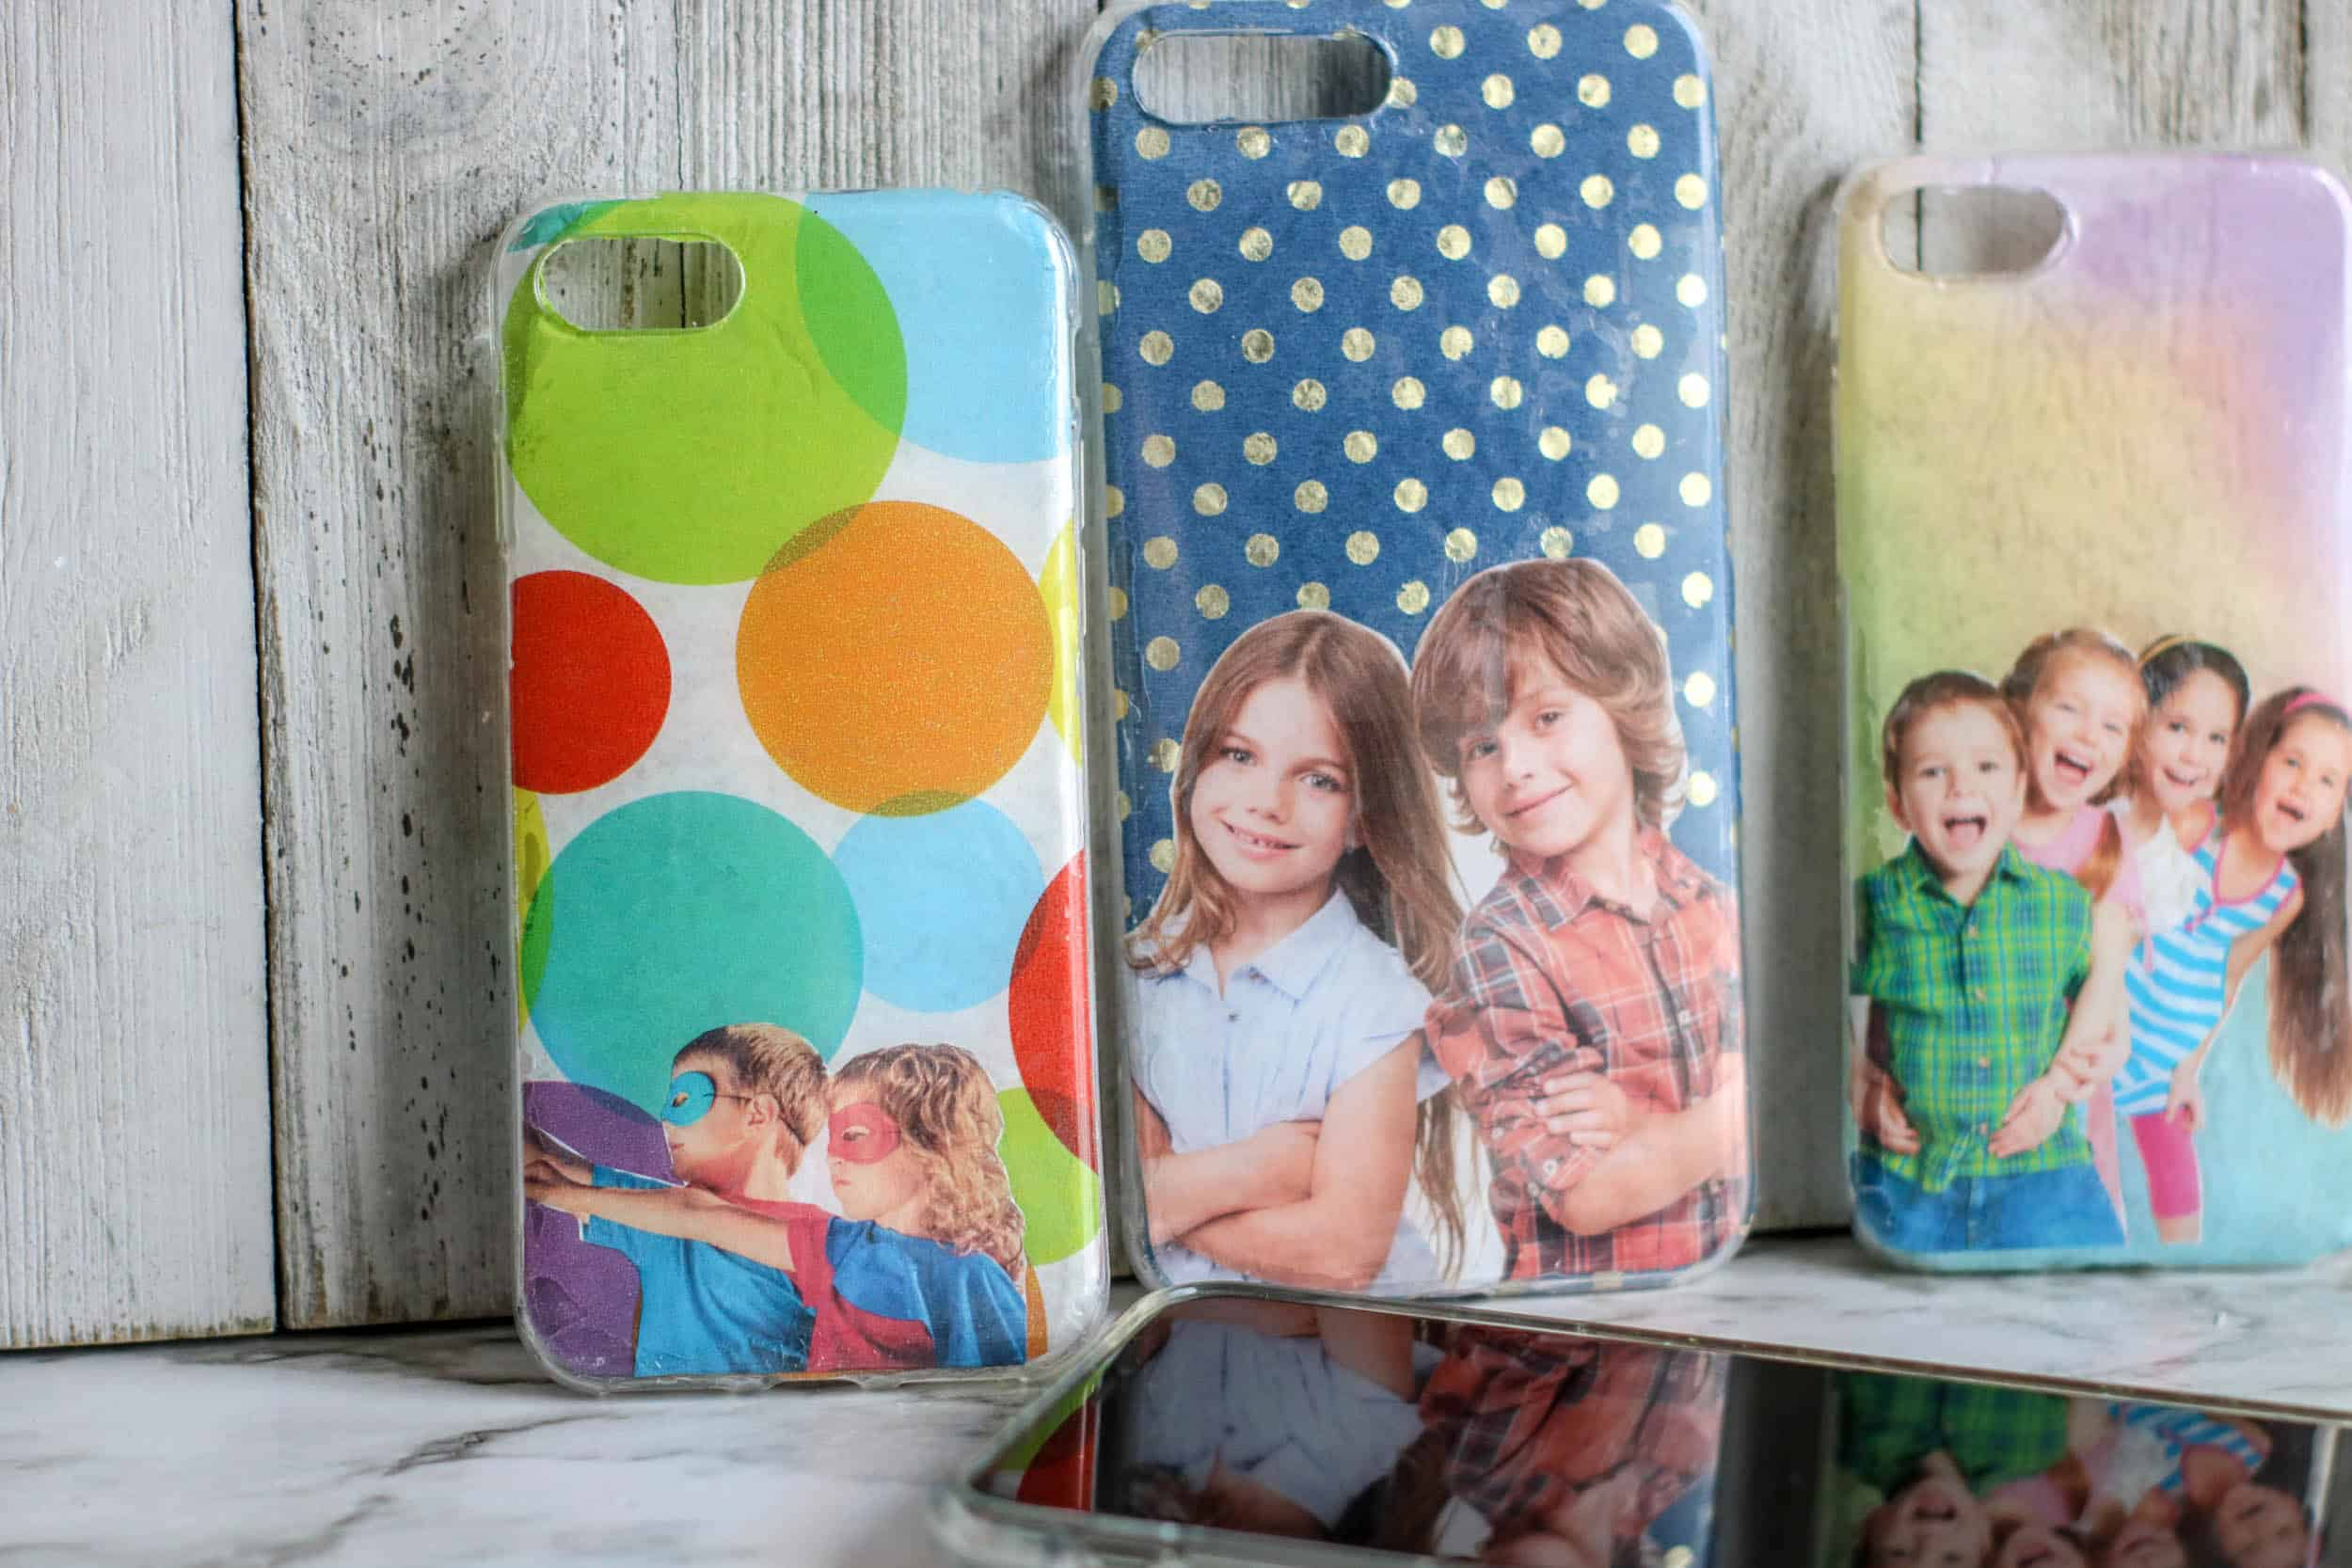 How To Make Personalized Cell Phone